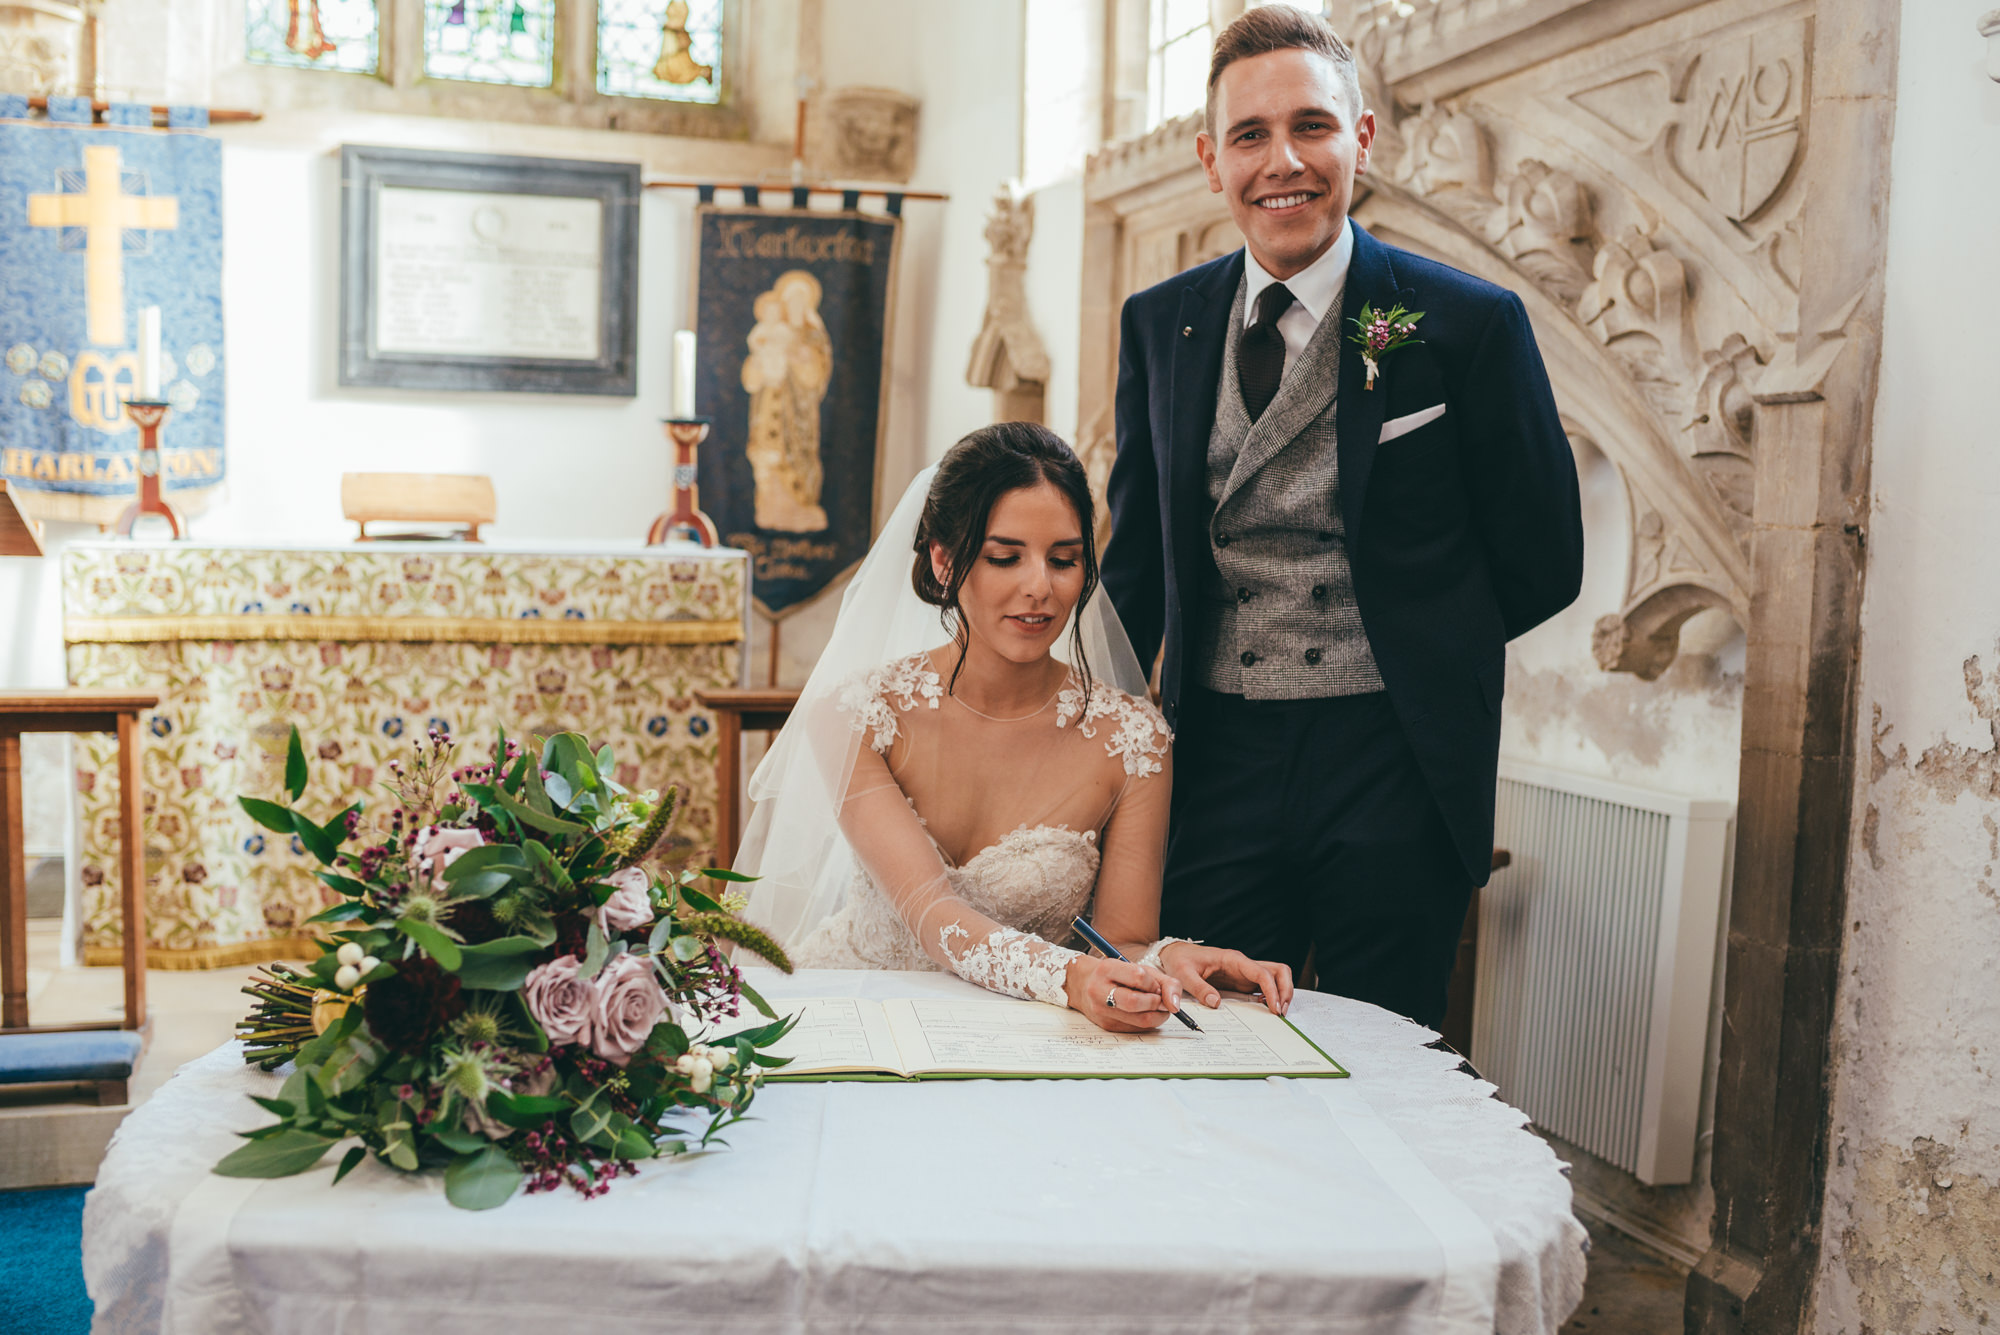 photograph of the bride and groom signing the wedding register